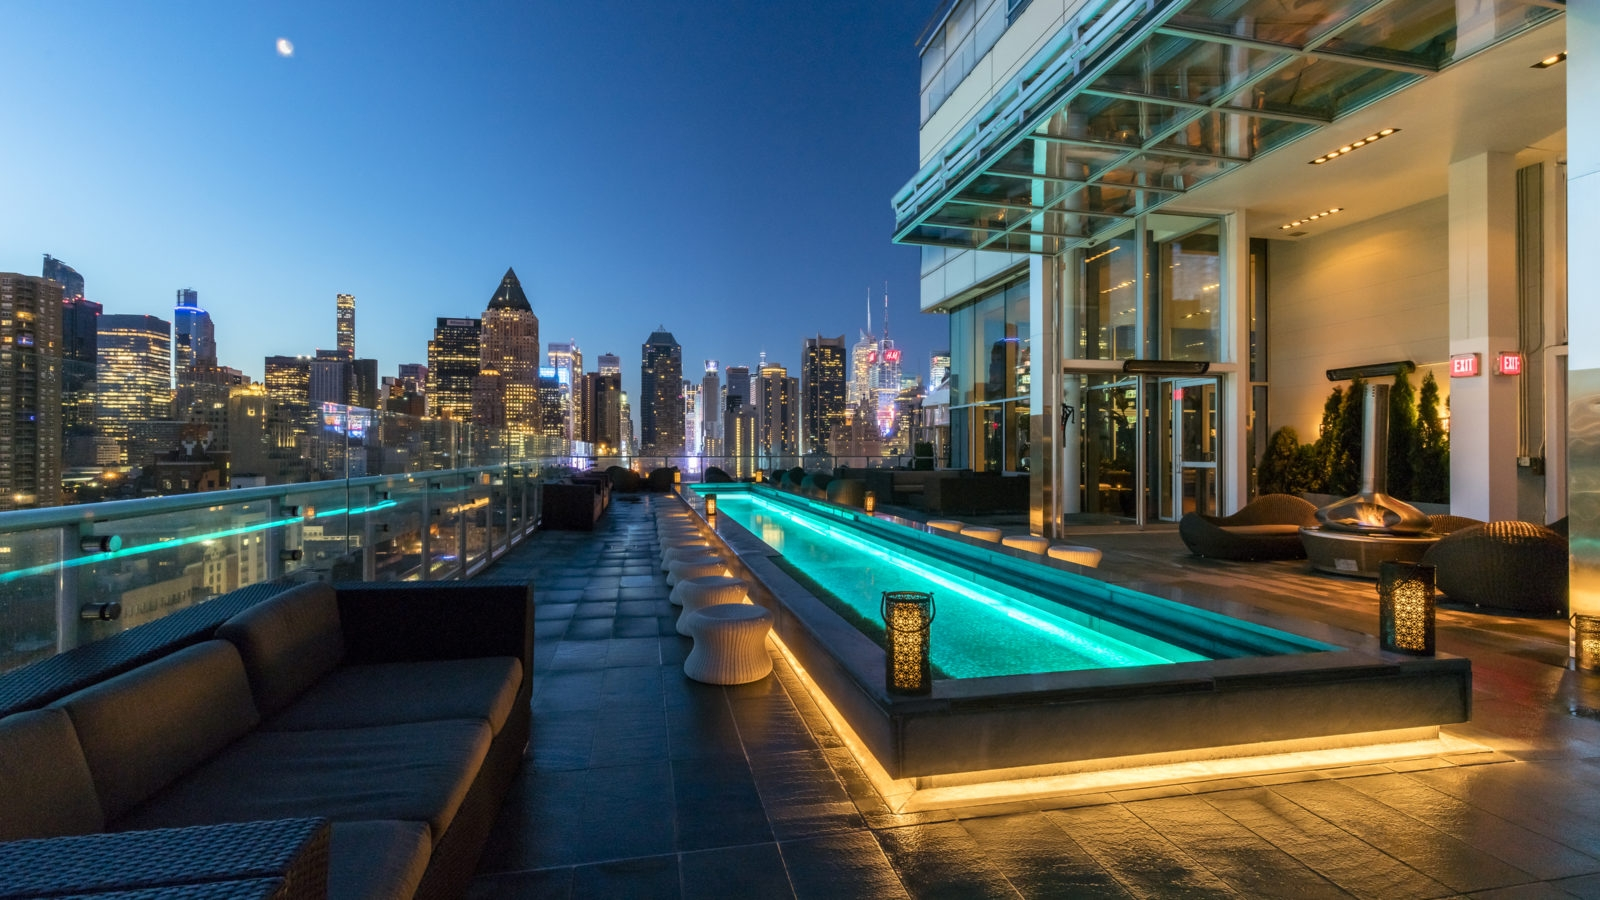 NYC Rooftop Bars to Celebrate the 4th of July